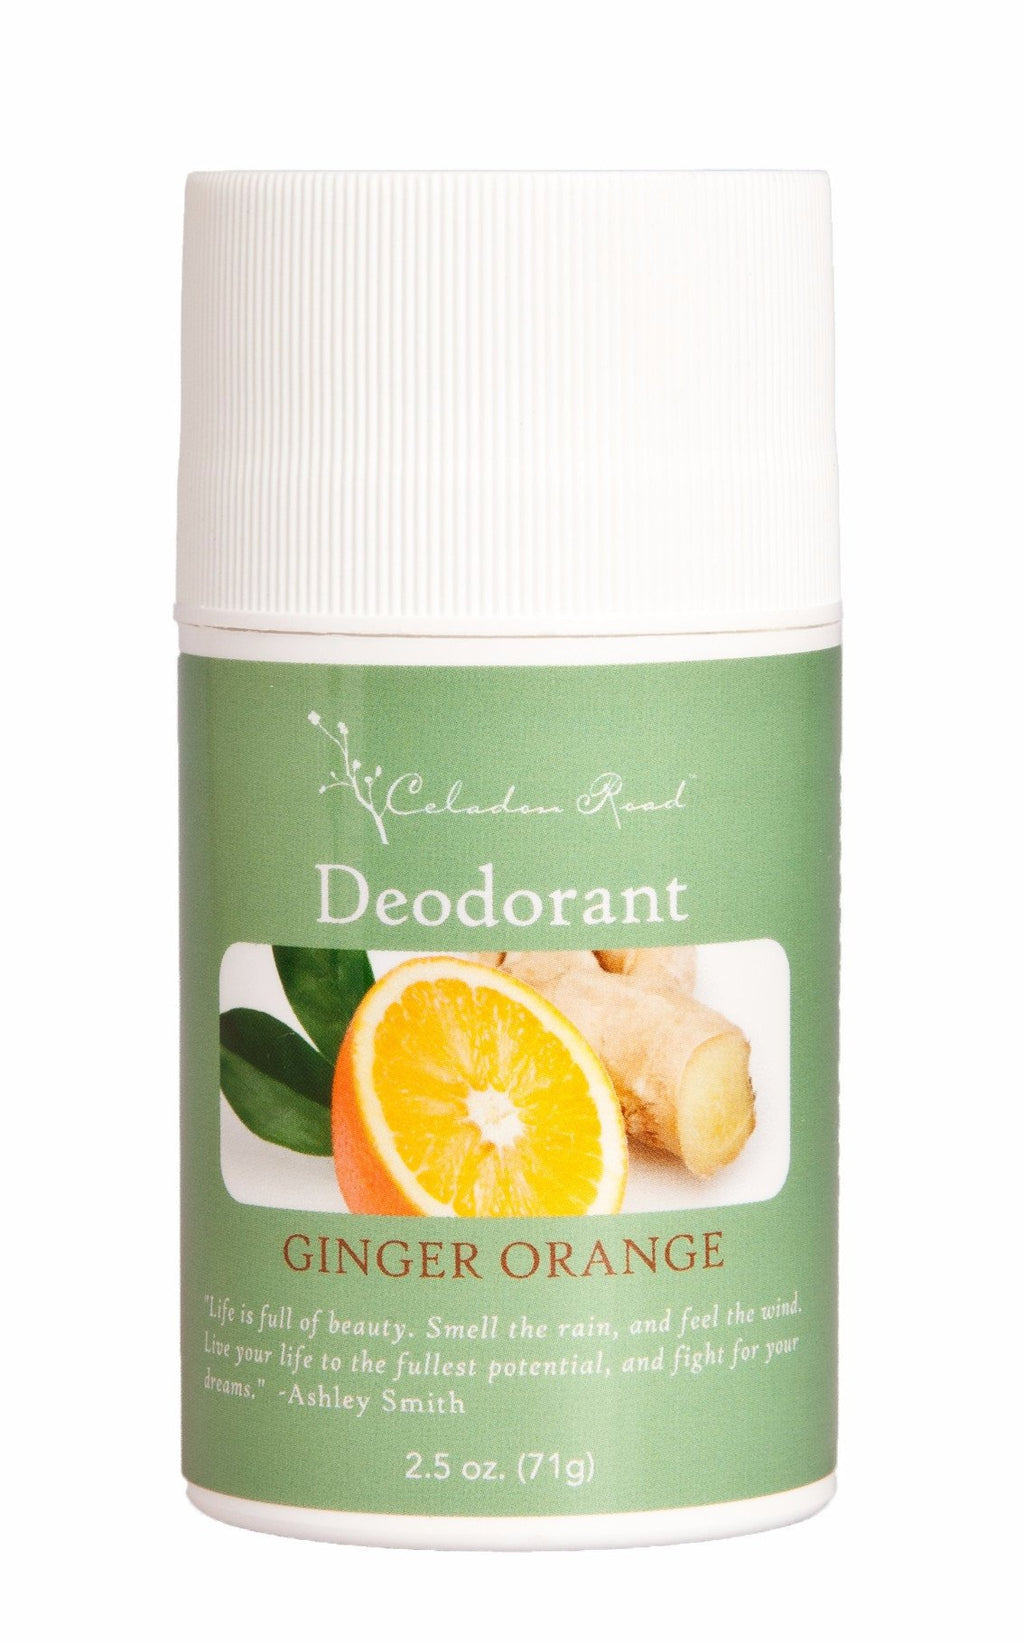 Ginger Orange Deodorant- Celadon Road- www.celadonroad.com